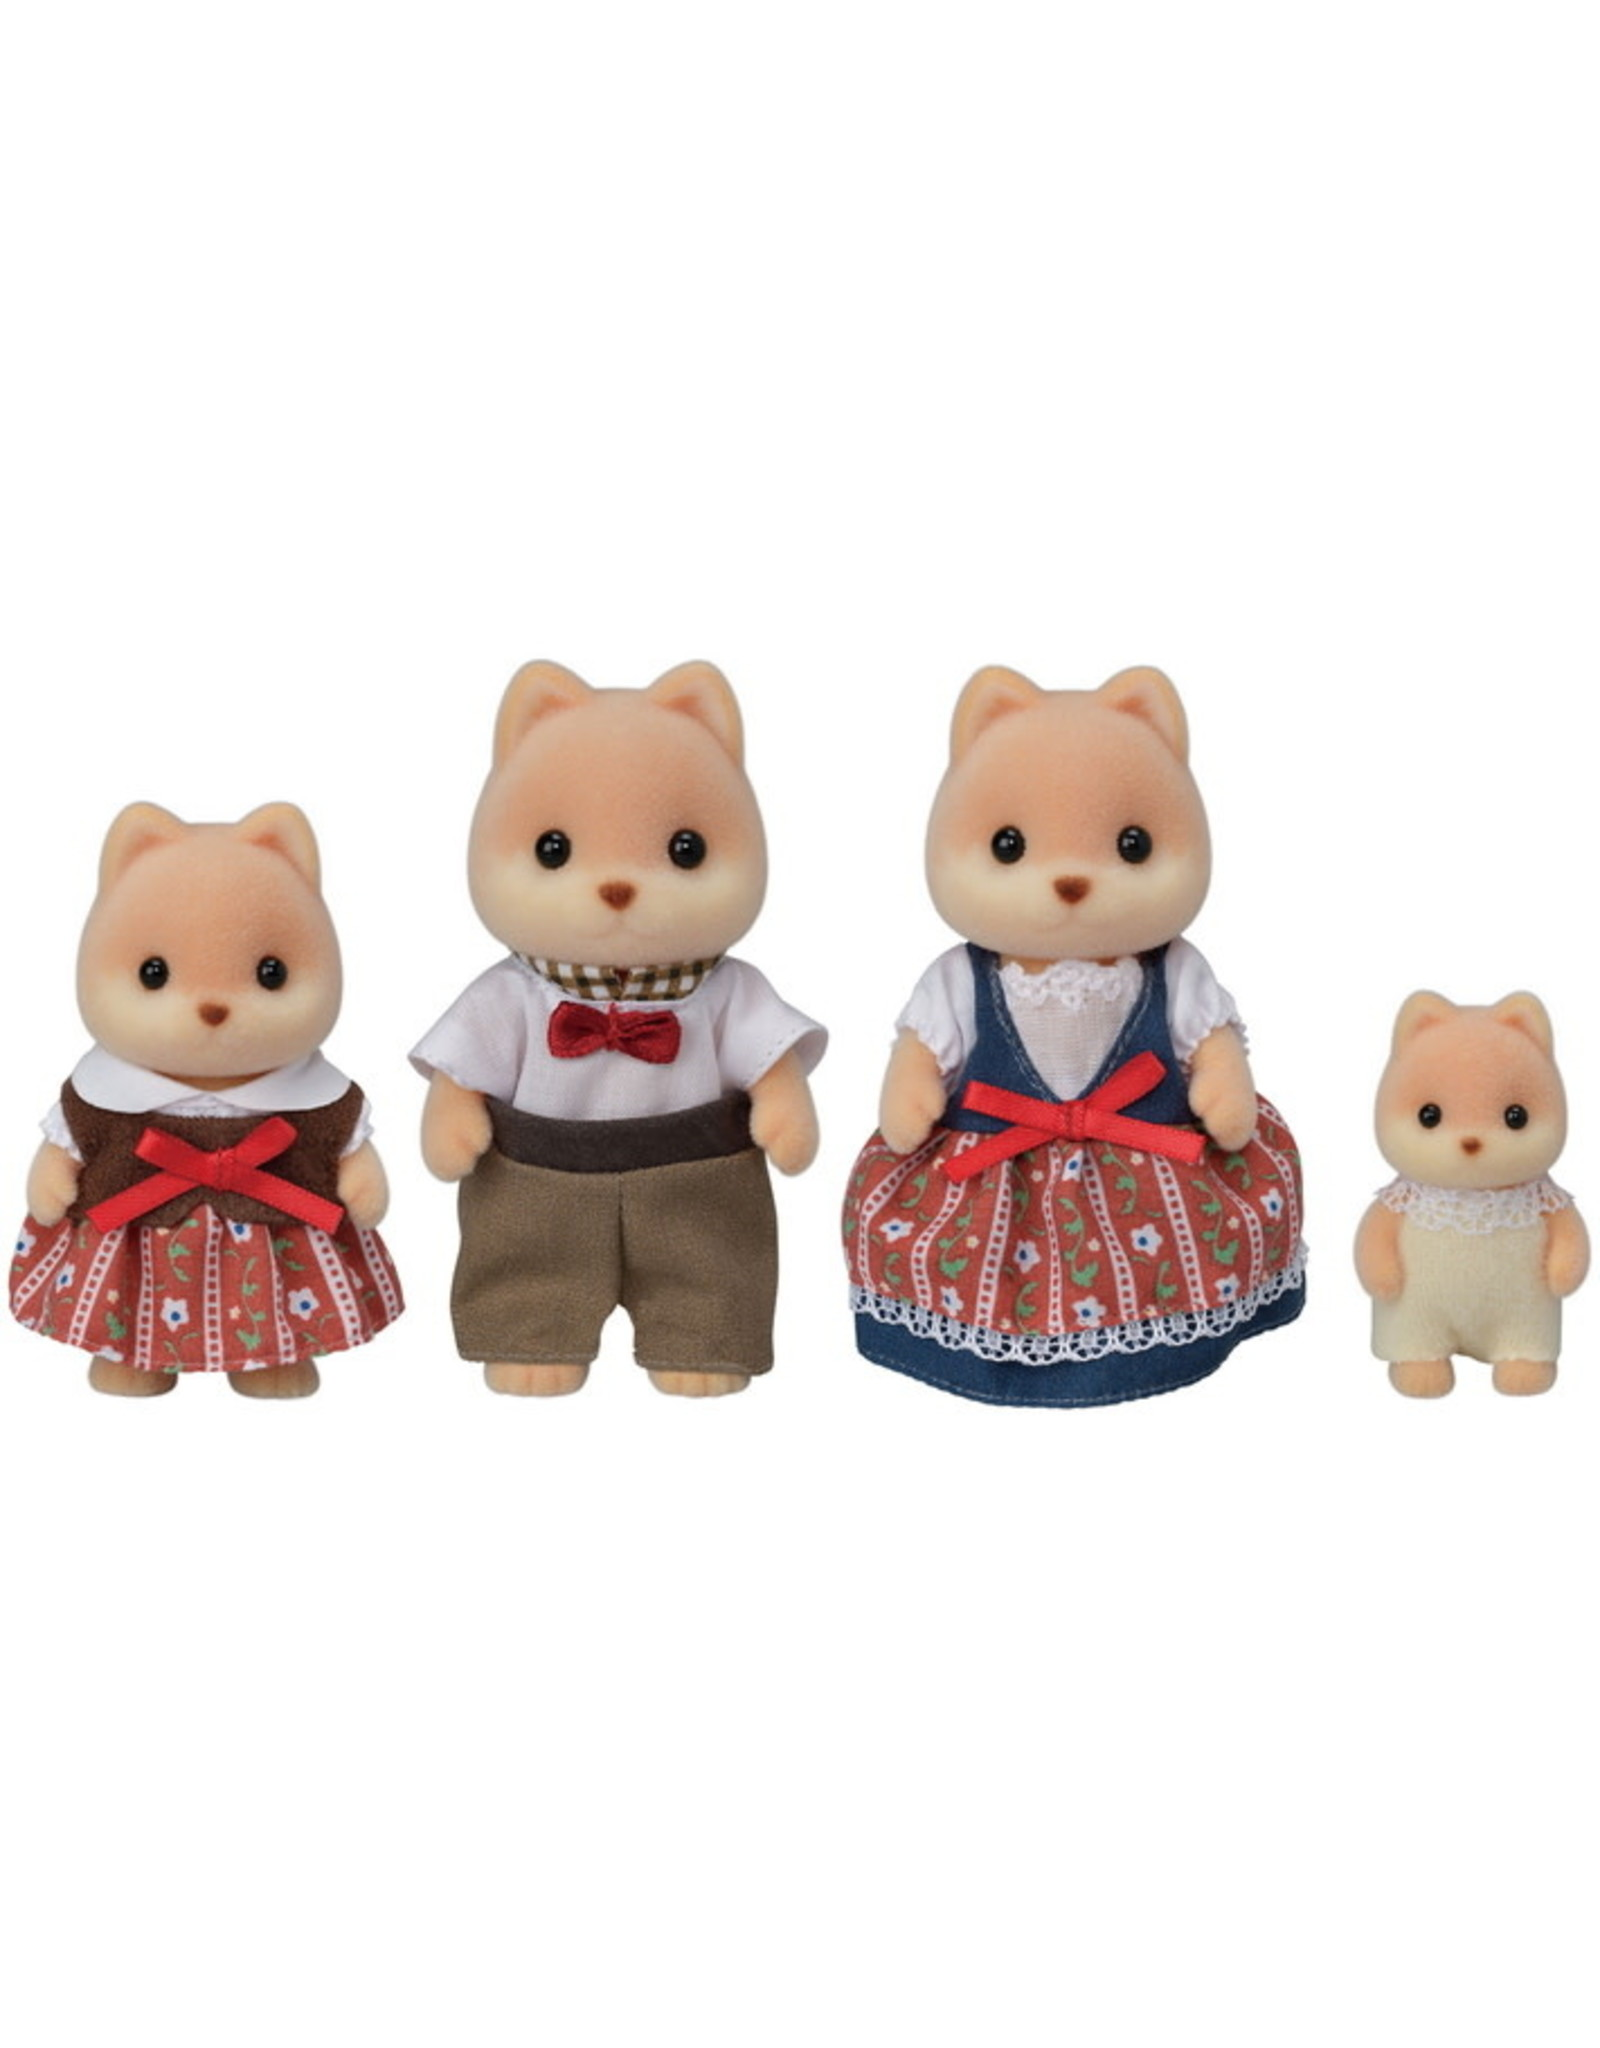 Calico Critters BL Caramel Dog Family Calico Critters